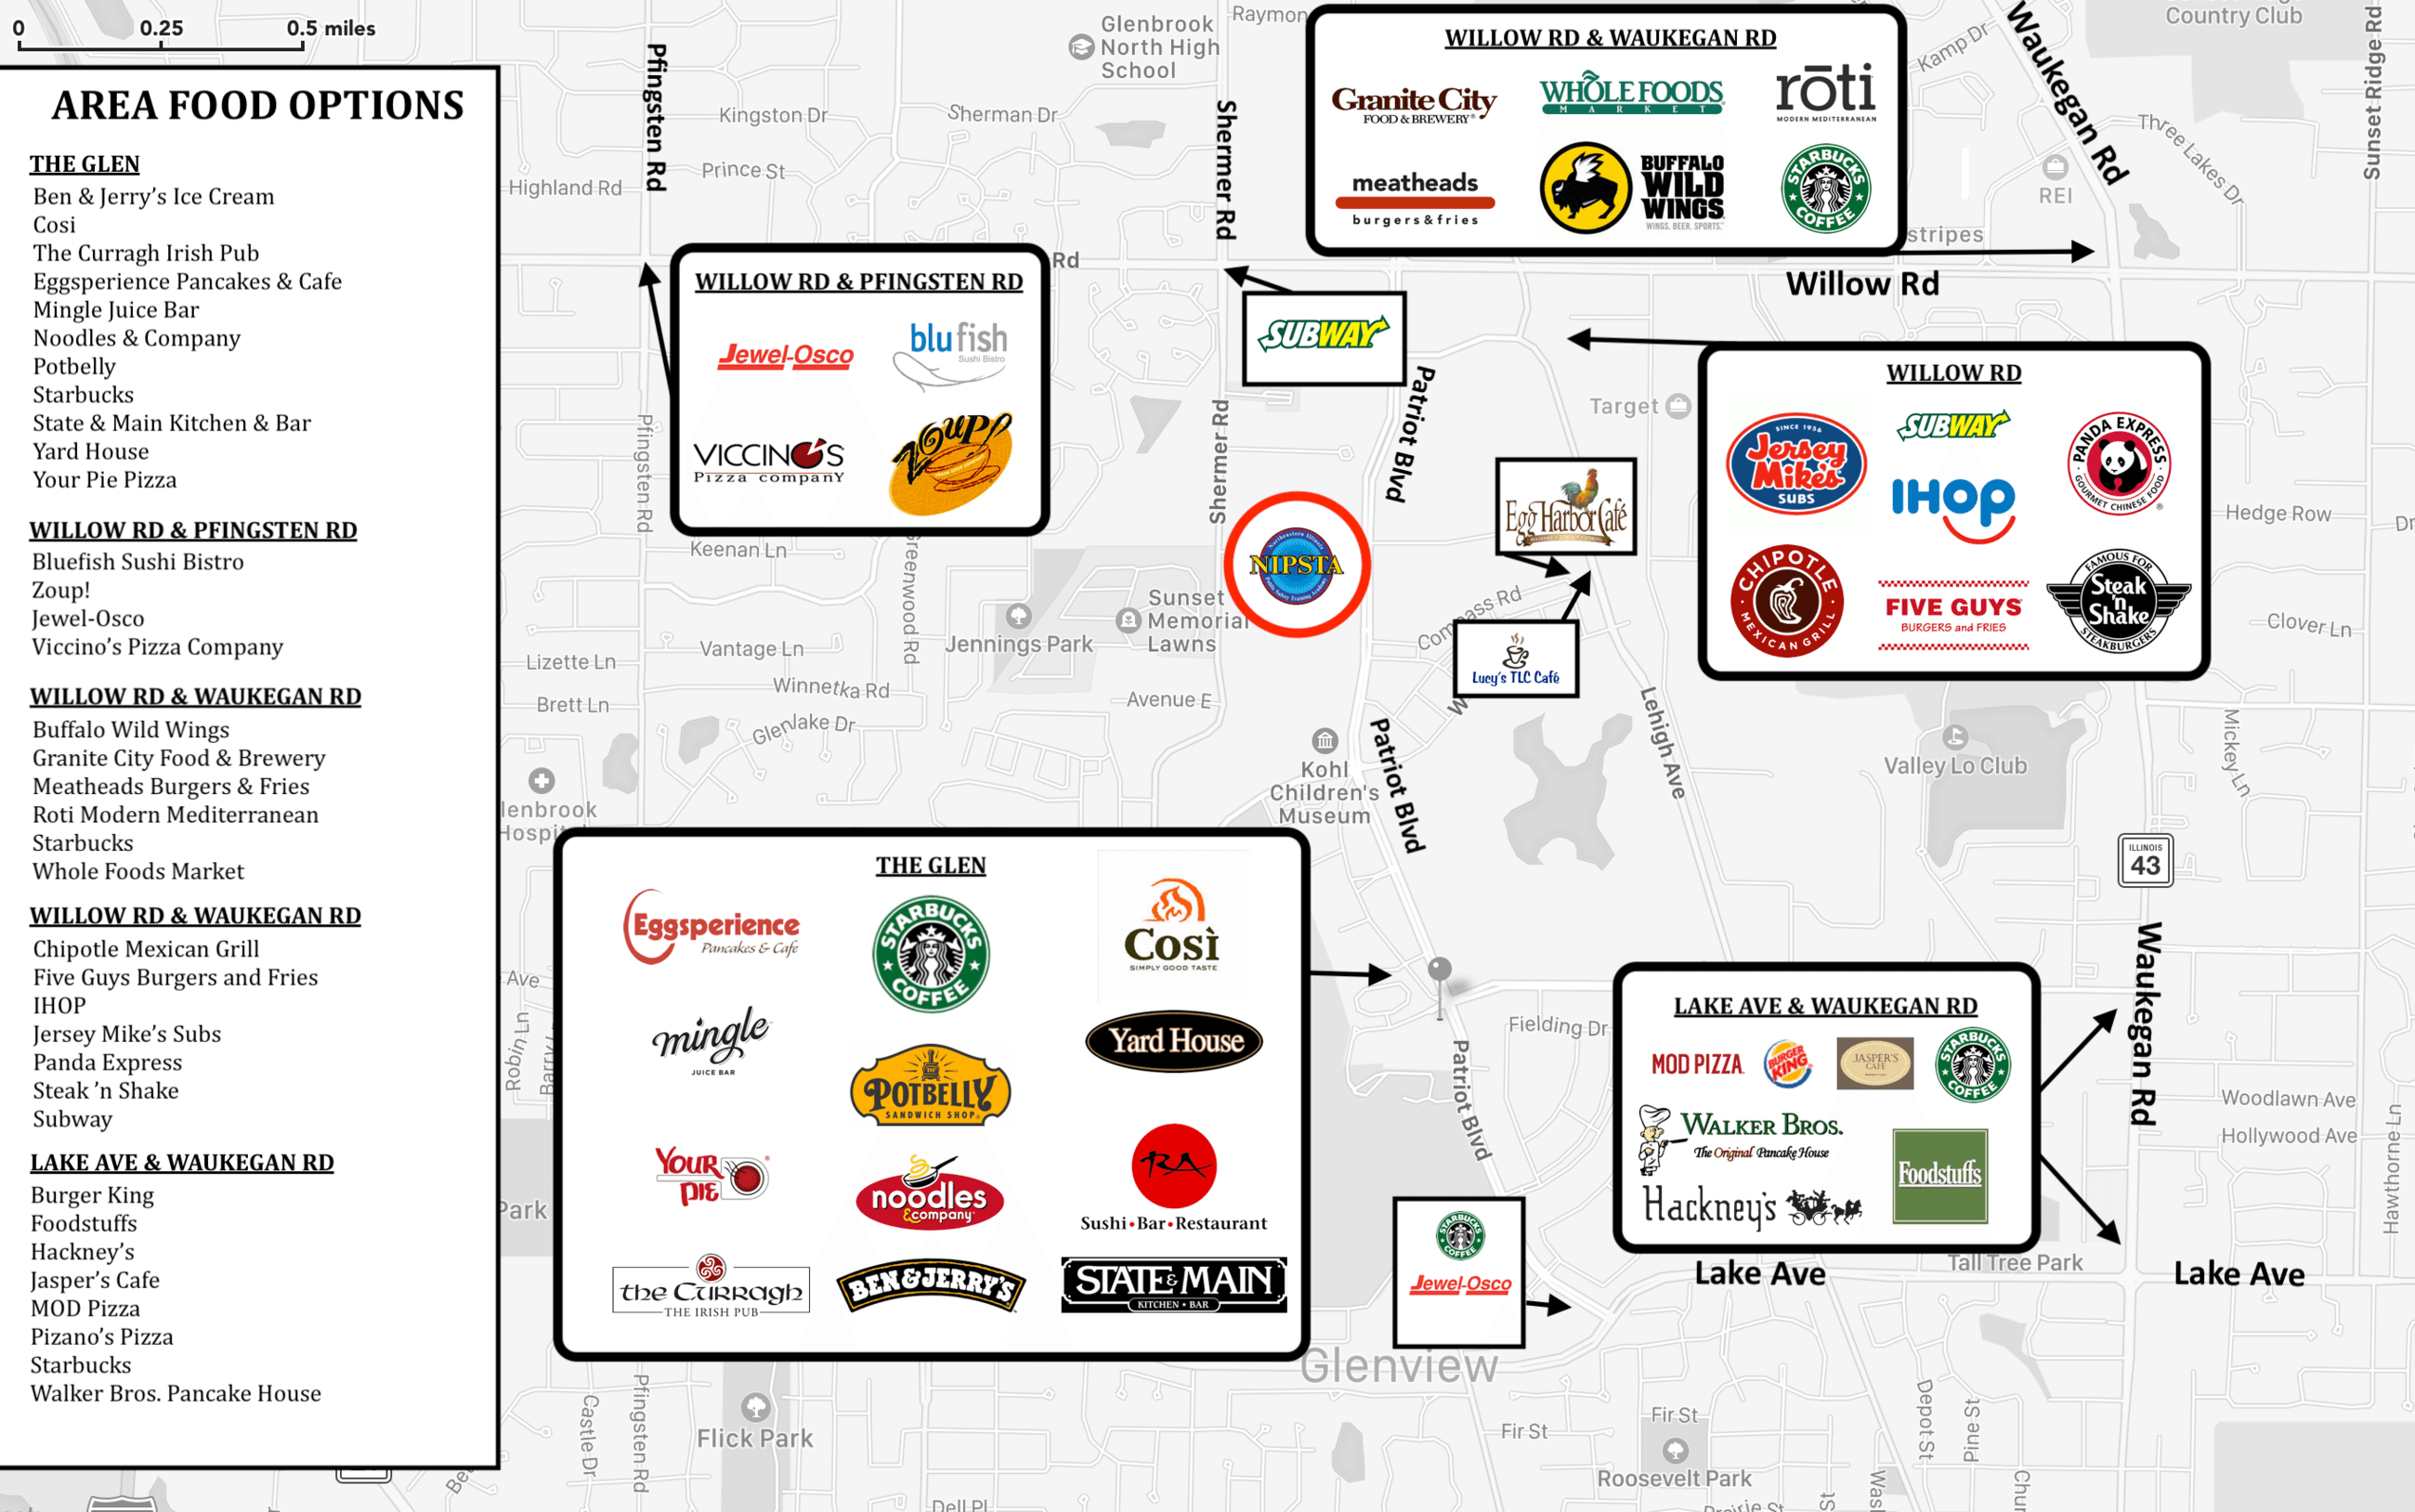 AREA FOOD OPTIONS MAP